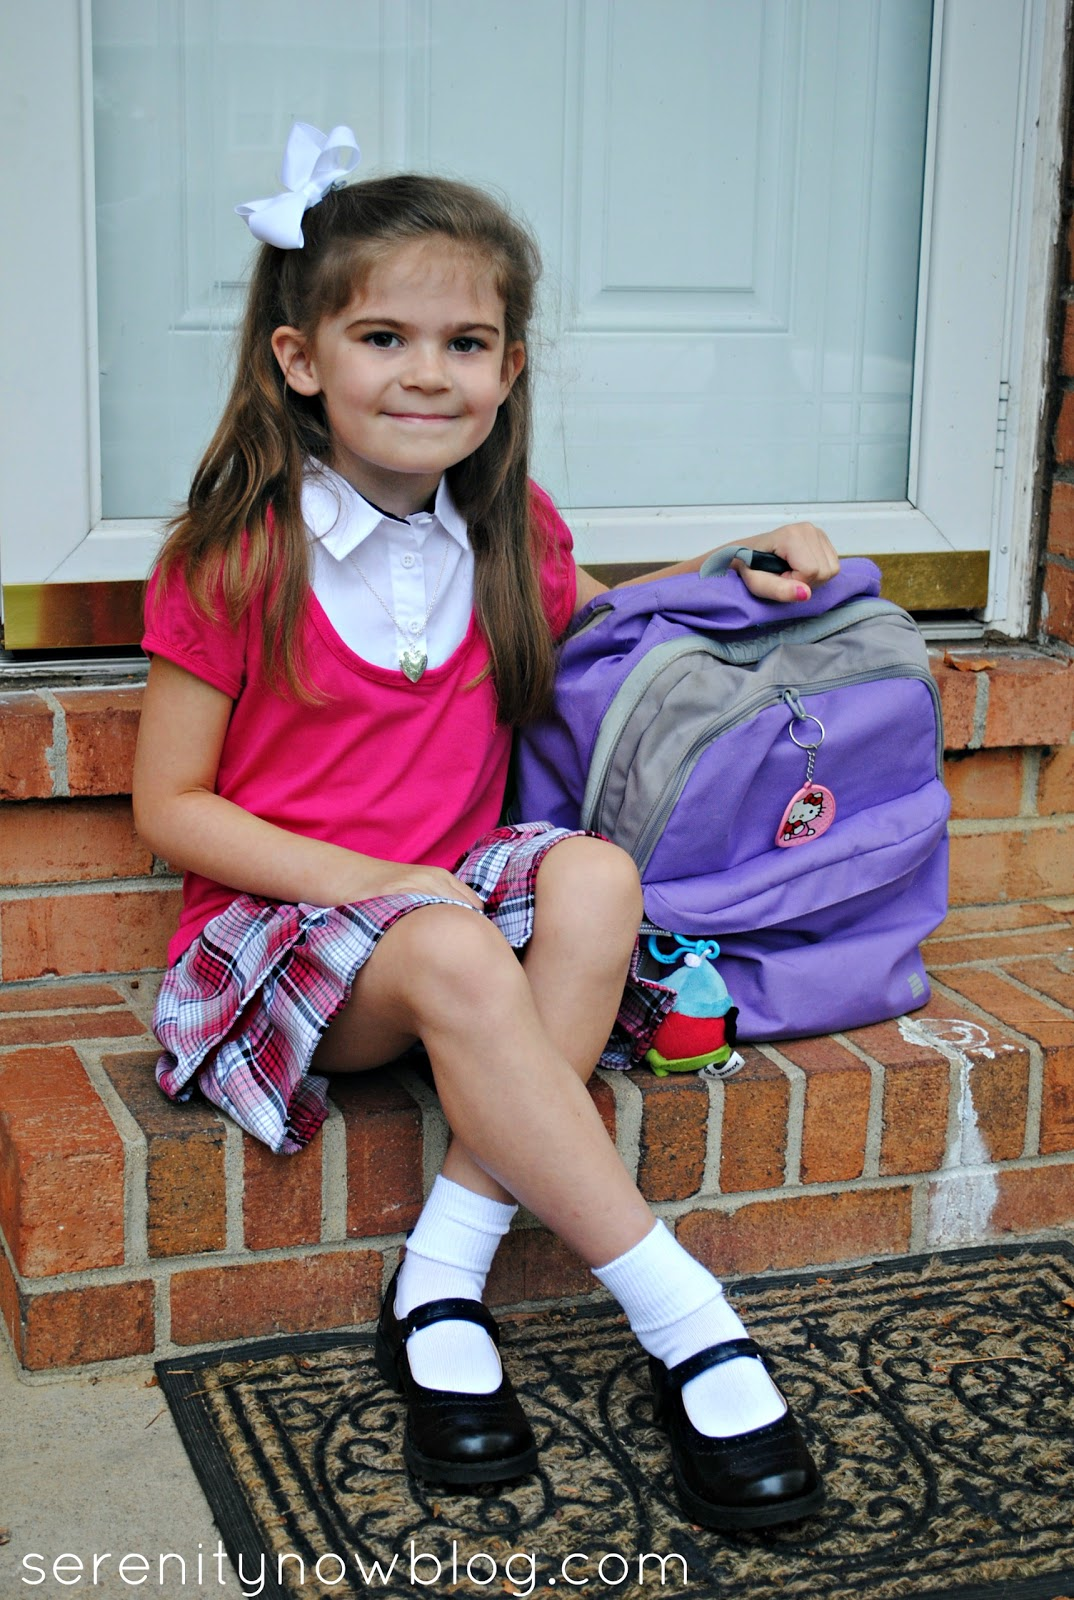 imgsrc.ru karat10 1 Filename: Back-to-School-Photo-First-Grade-Serenity Now blog.jpg